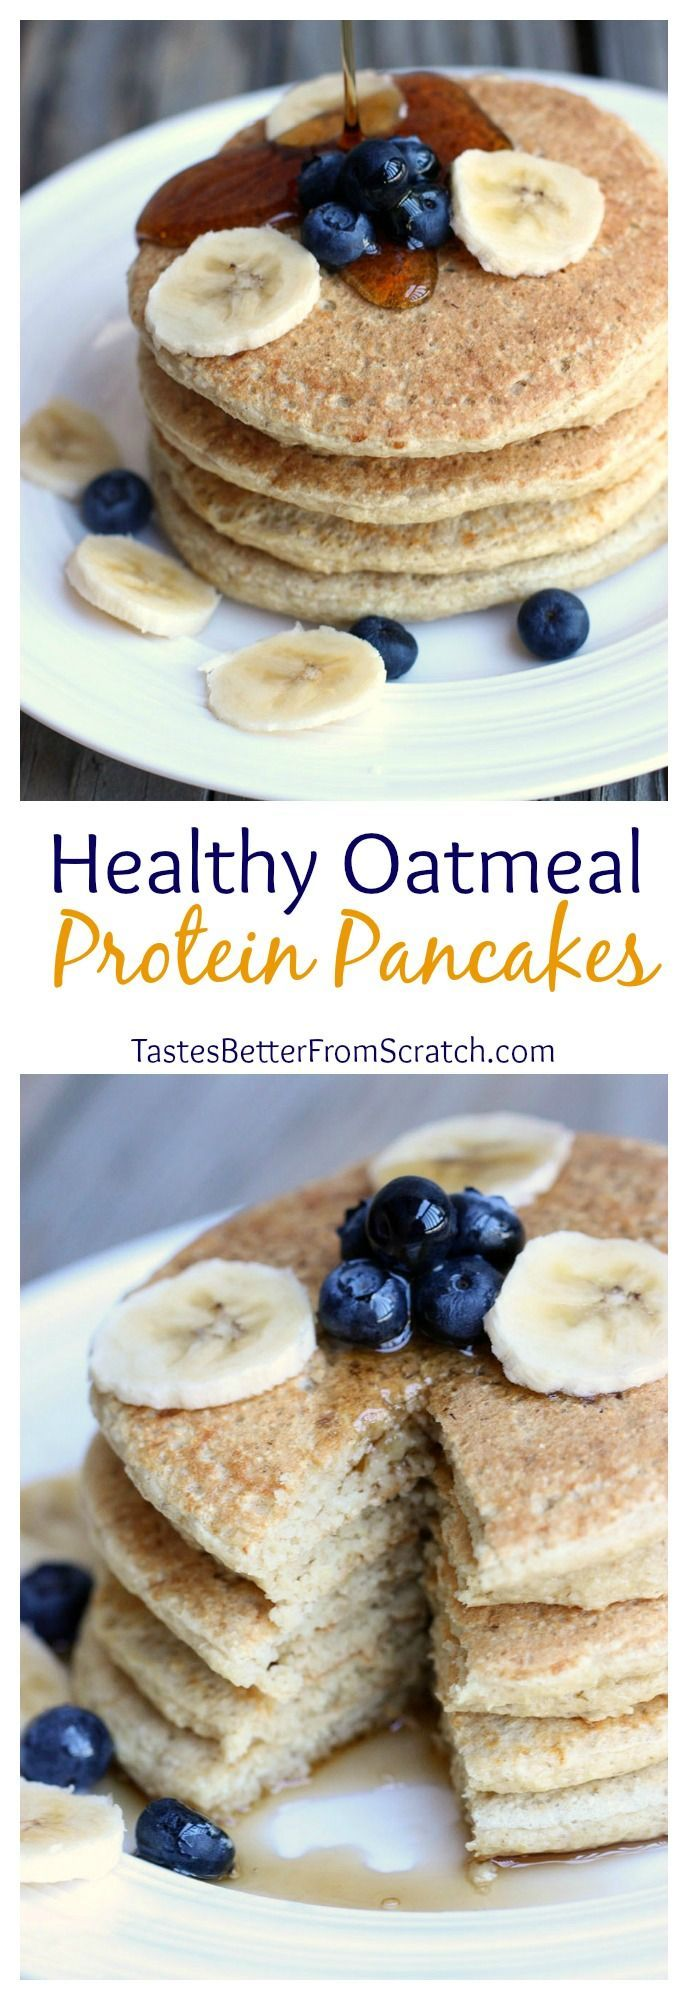 25+ best ideas about Low Cholesterol Meals on Pinterest ...